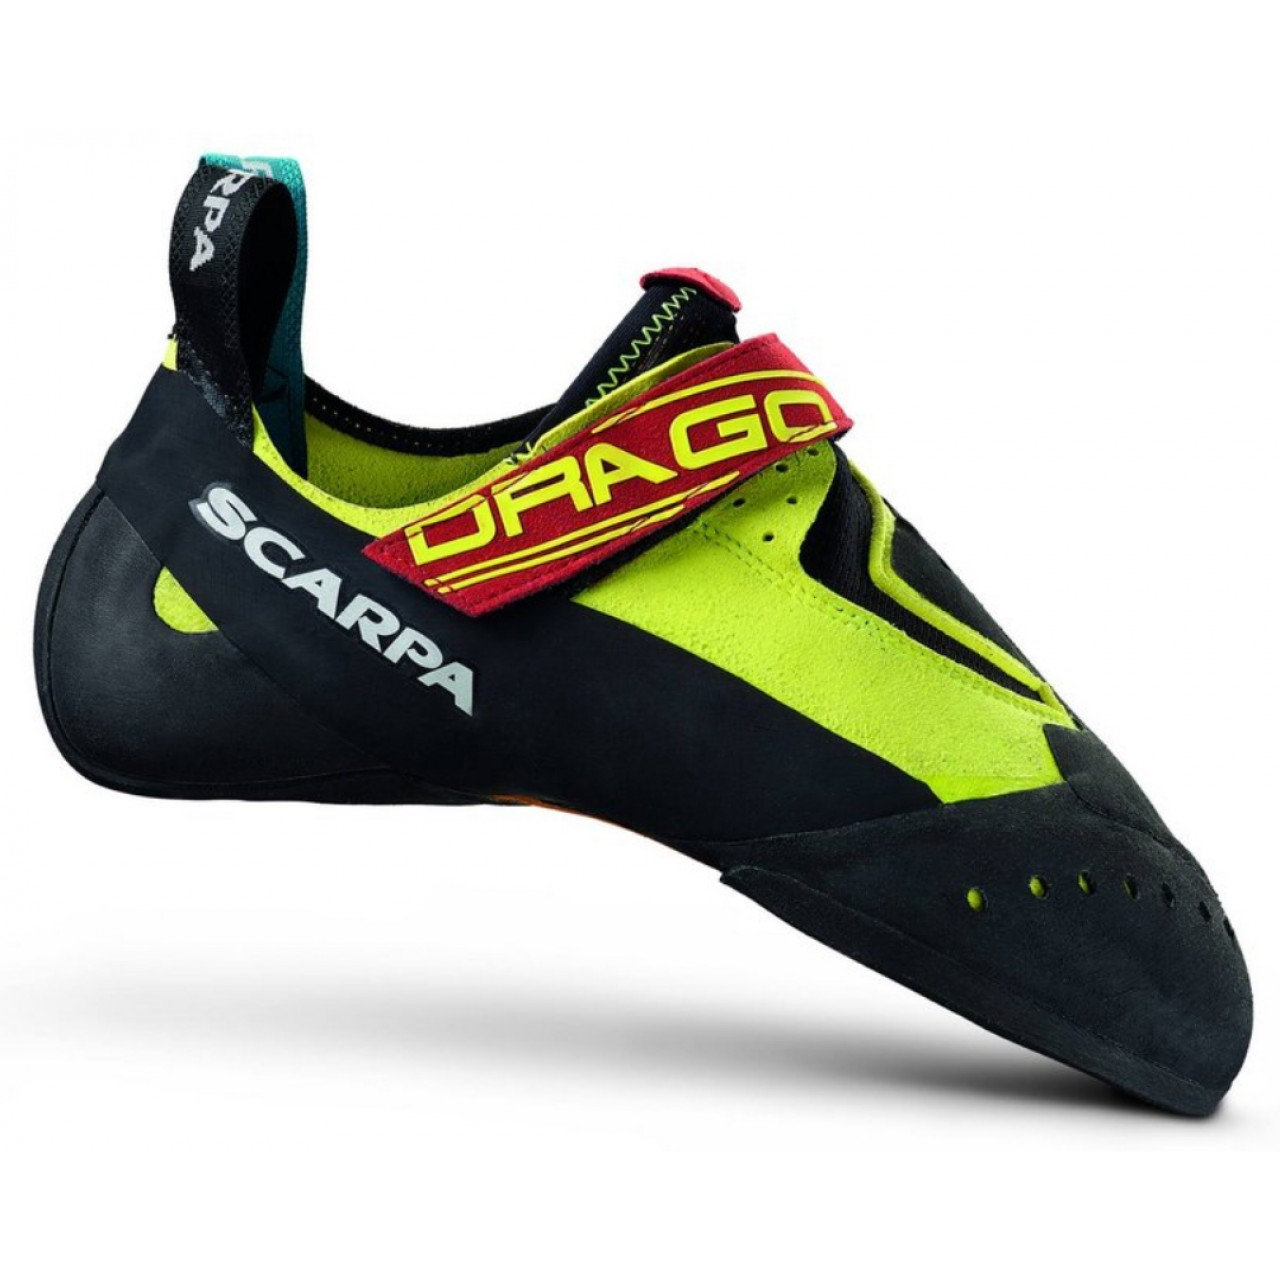 7537f1abb641 The Drago is Scarpa s latest performance shoe. It is so new that the only  images we have available right now are those that we took at the Outdoor  tradeshow ...